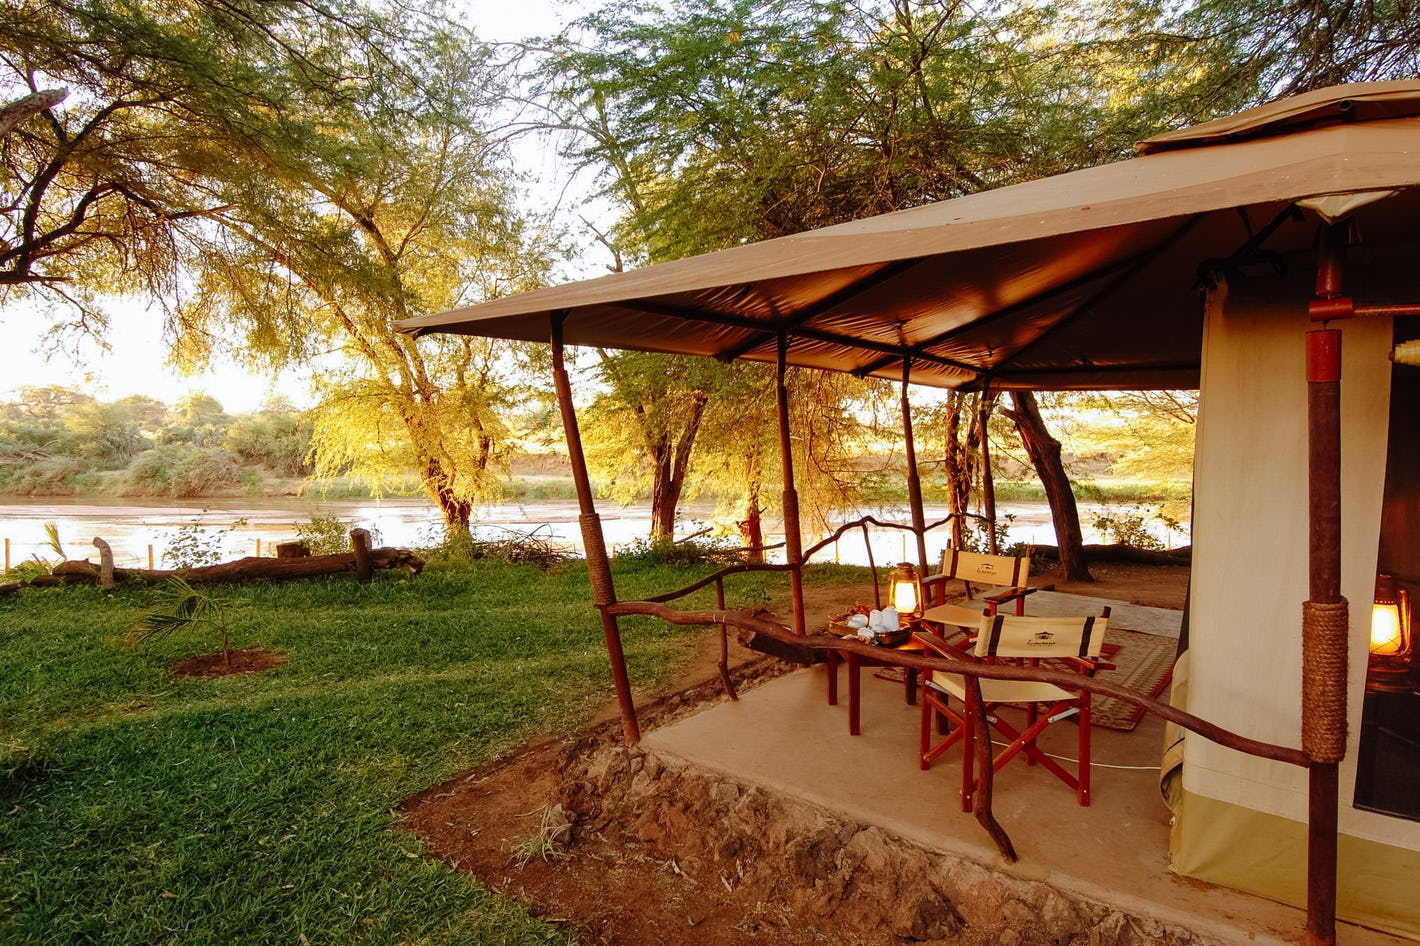 Larsens camp samburu 17